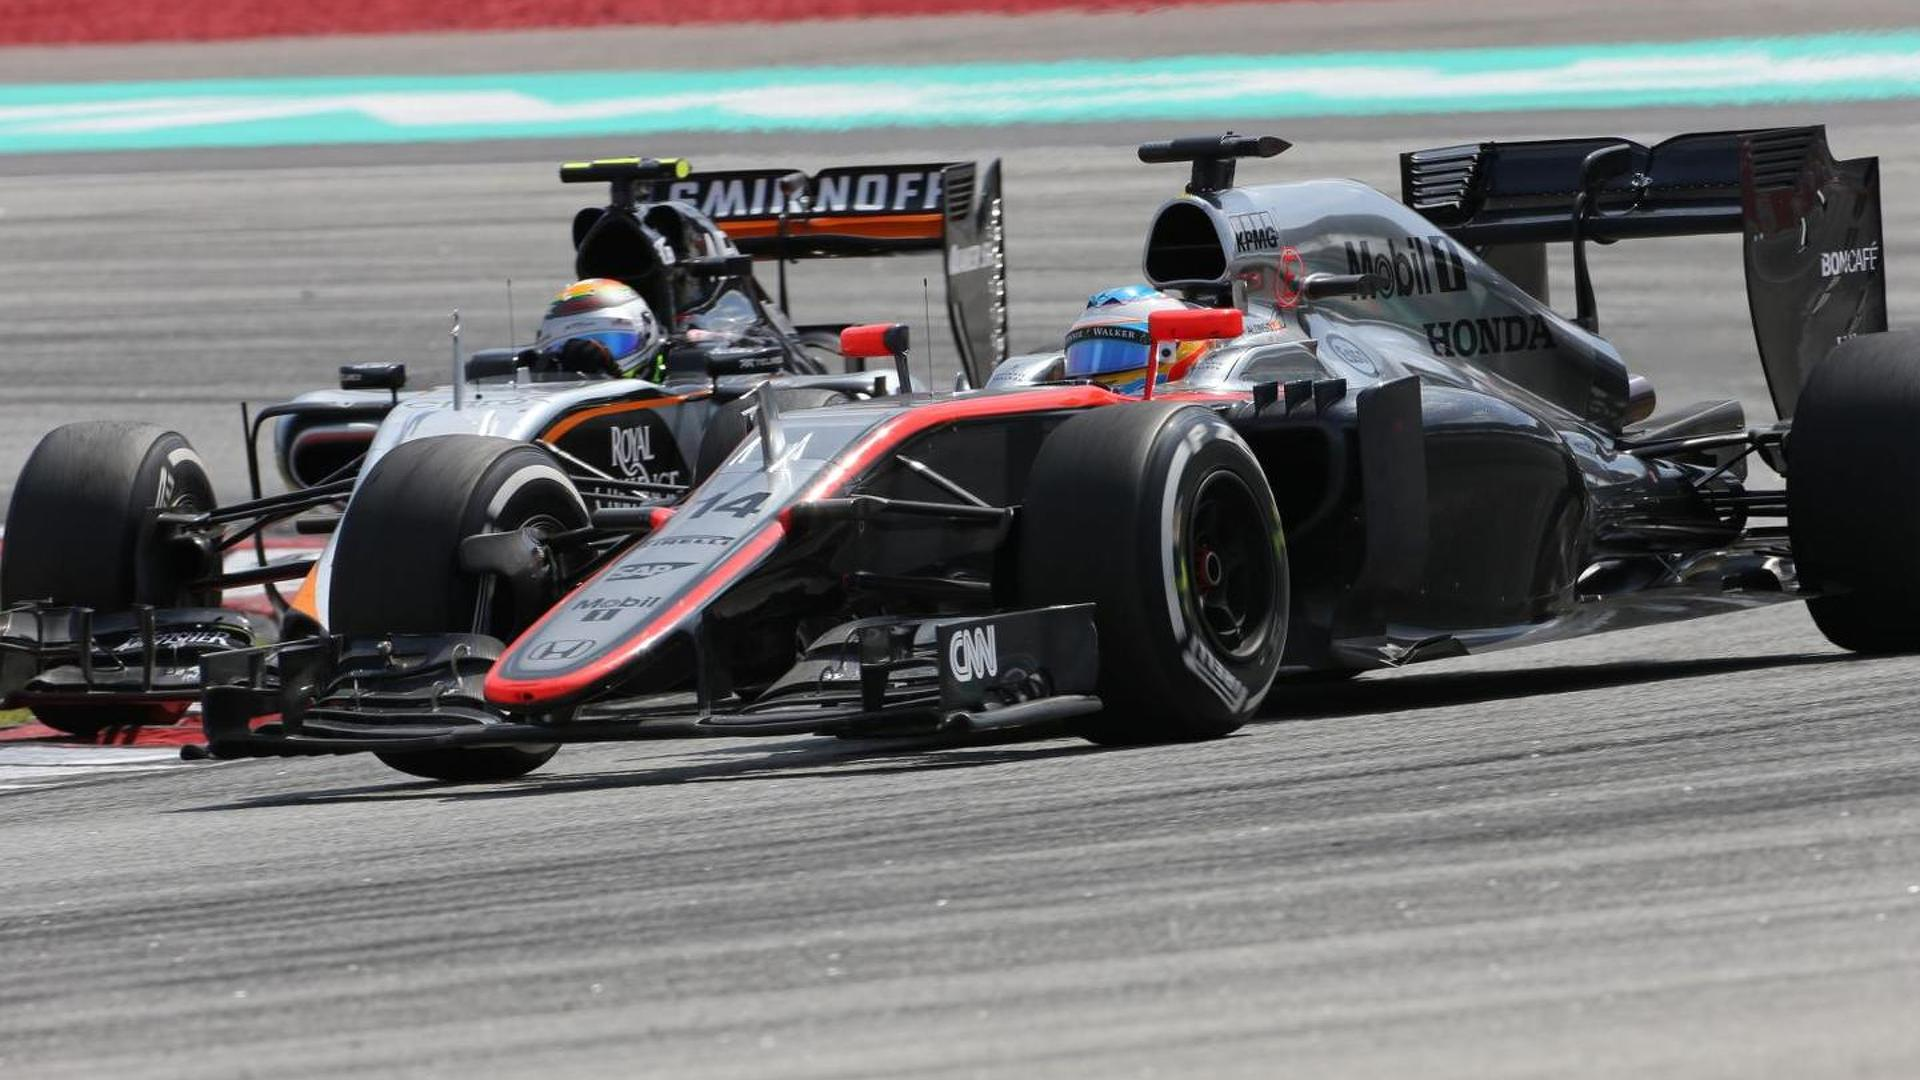 McLaren to keep same car concept in 2016